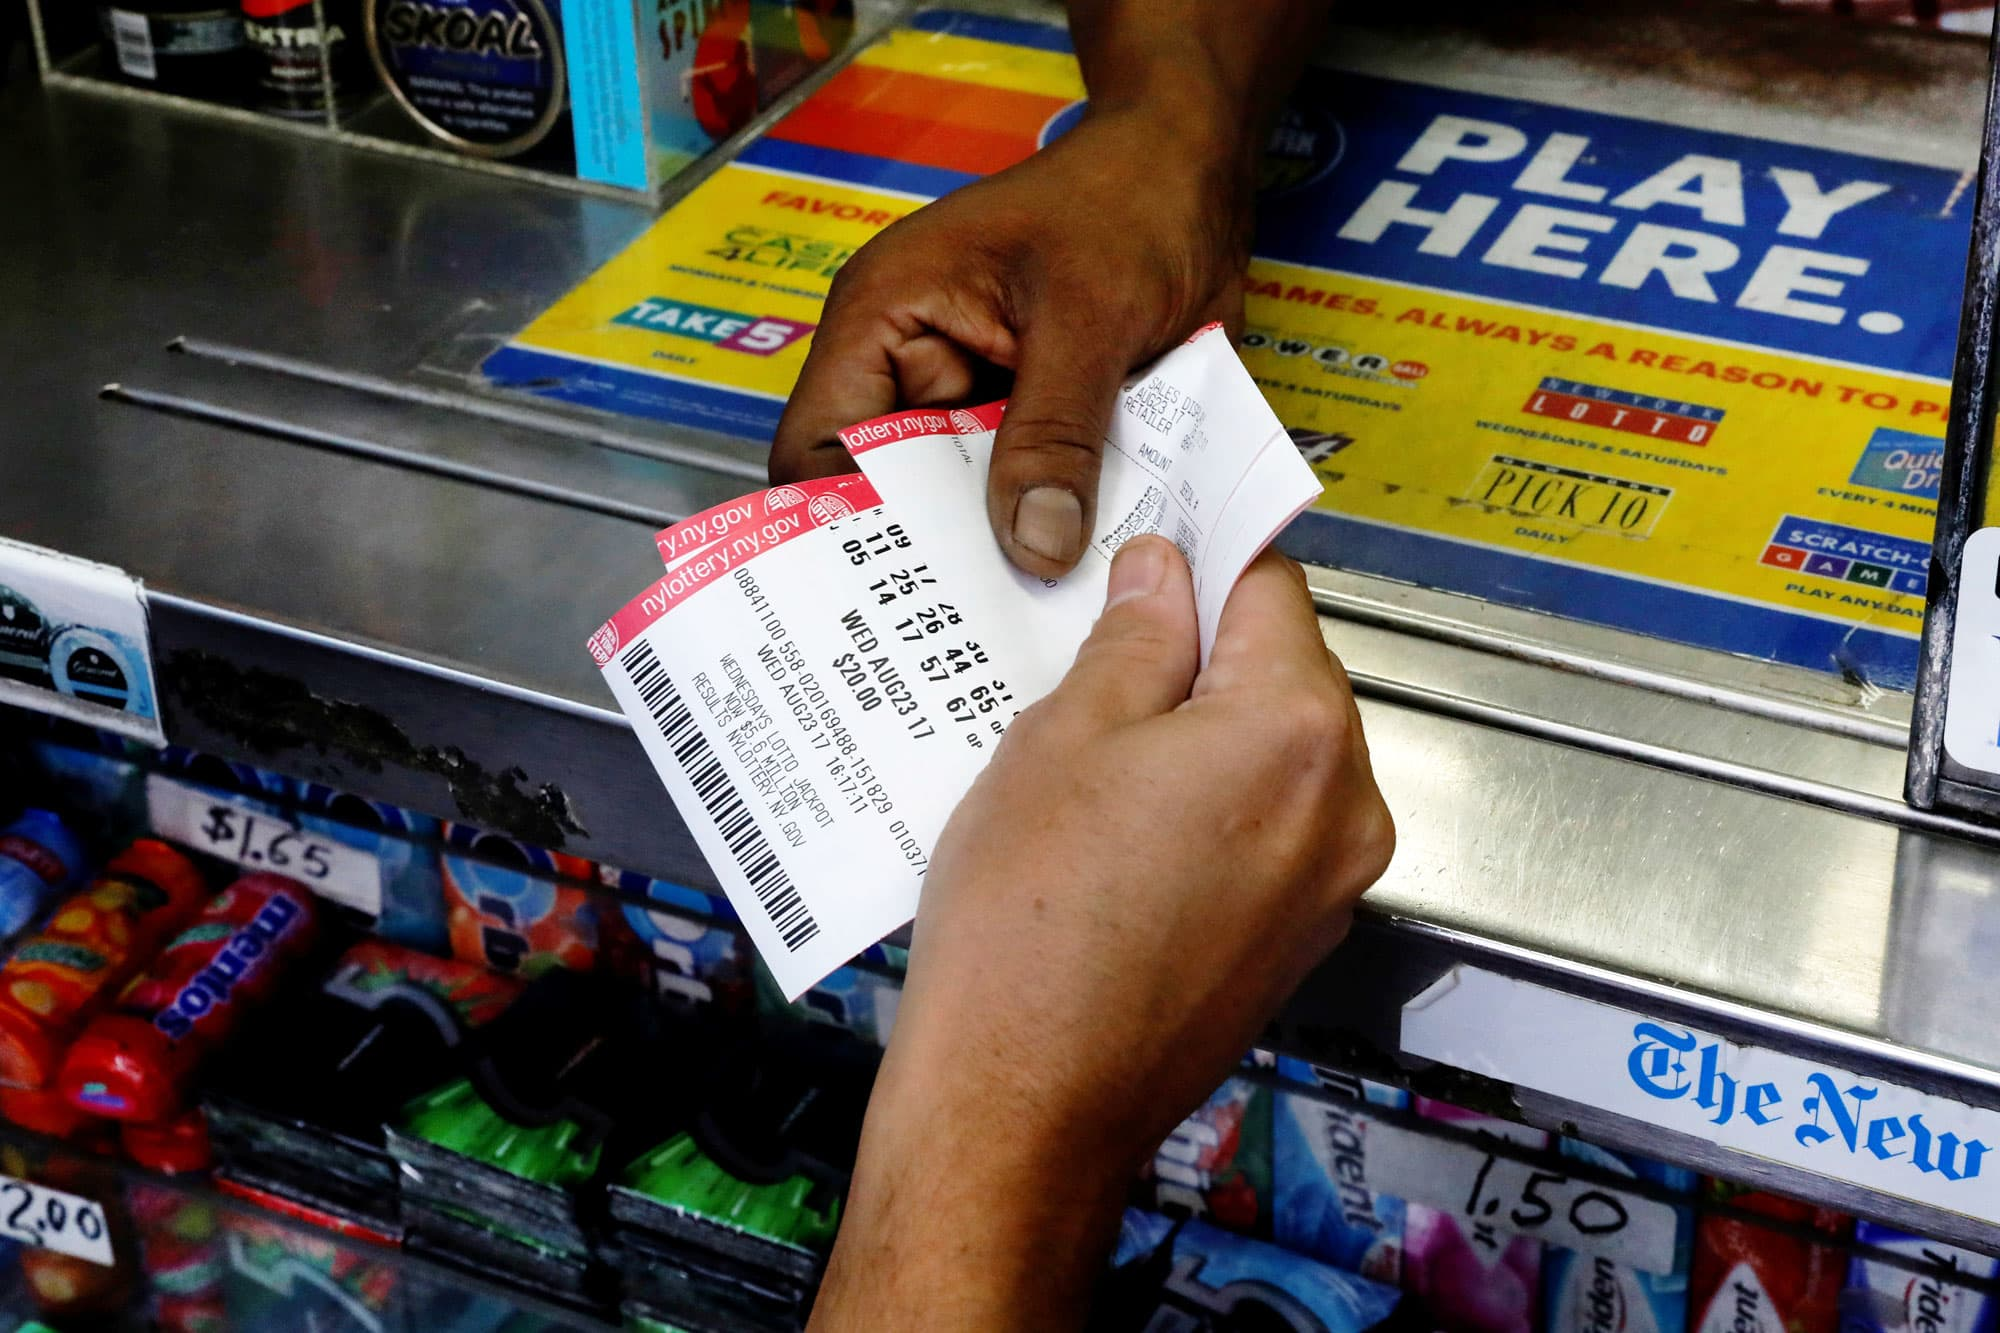 Decisions If You Win 600 Million In Powerball Mega Millions Jackpots